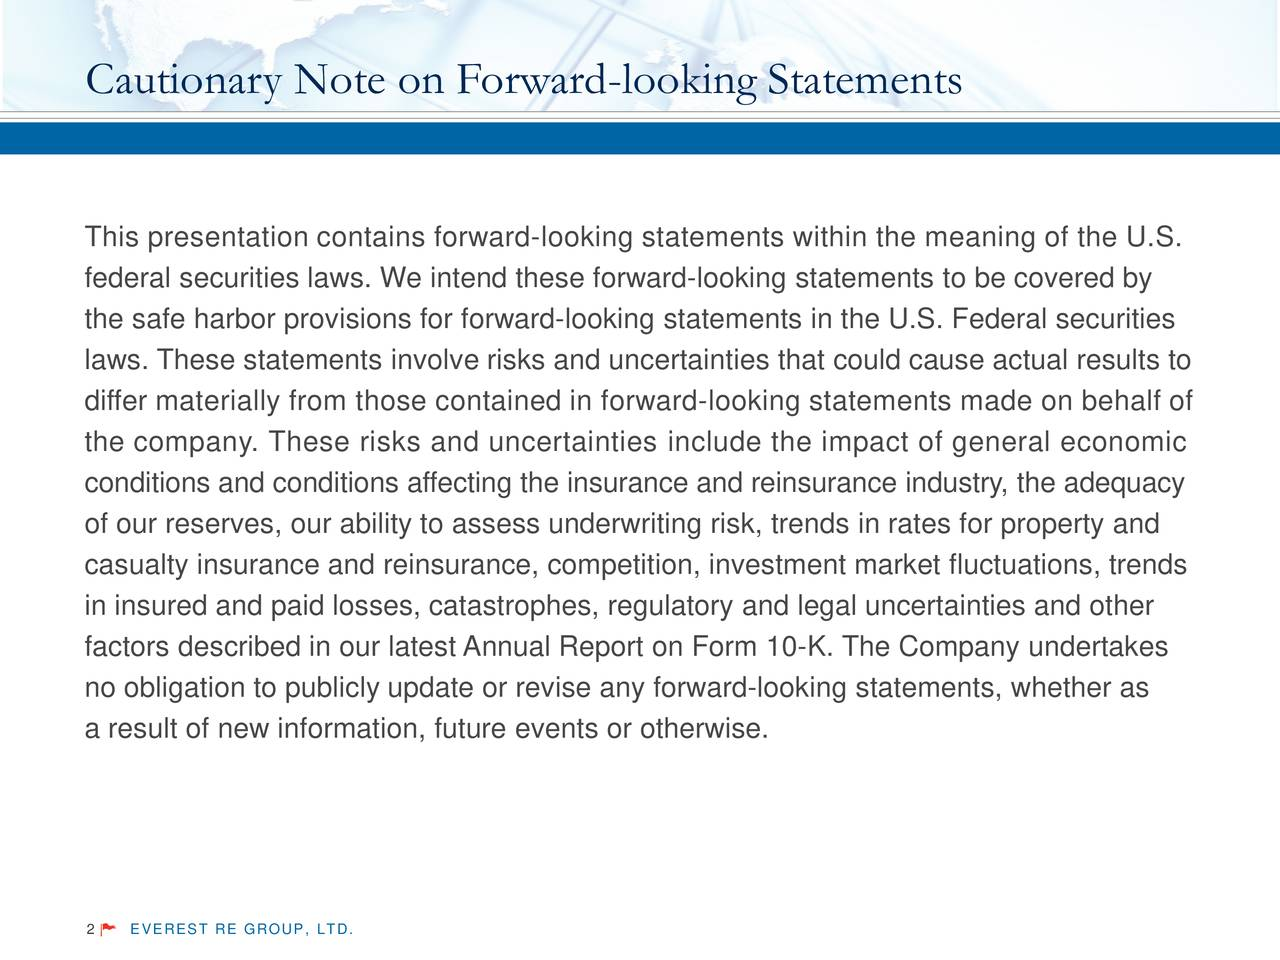 This presentation contains forward- looking statements within the meaning of the U.S. federal securities laws. We intend these forward-looking statements to be covered by the safe harbor provisions for forward-looking statements in the U.S. Federal securities laws. These statements involve risks and uncertainties that could cause actual results to differ materially from those contained in forward- looking statements made on behalf of the company. These risks and uncertainties include the impact of general economic conditions and conditions affecting the insurance and reinsurance industry, the adequacy of our reserves, our ability to assess underwriting risk, trends in rates for property and casualty insurance and reinsurance, competition, investment market fluctuations, trends in insured and paid losses, catastrophes, regulatory and legal uncertainties and other factors described in our latest Annual Report on Form 10-K. The Company undertakes no obligation to publicly update or revise any forward-looking statements, whether as a result of new information, future events or otherwise. 2 EVEREST RE GROUP, LTD.